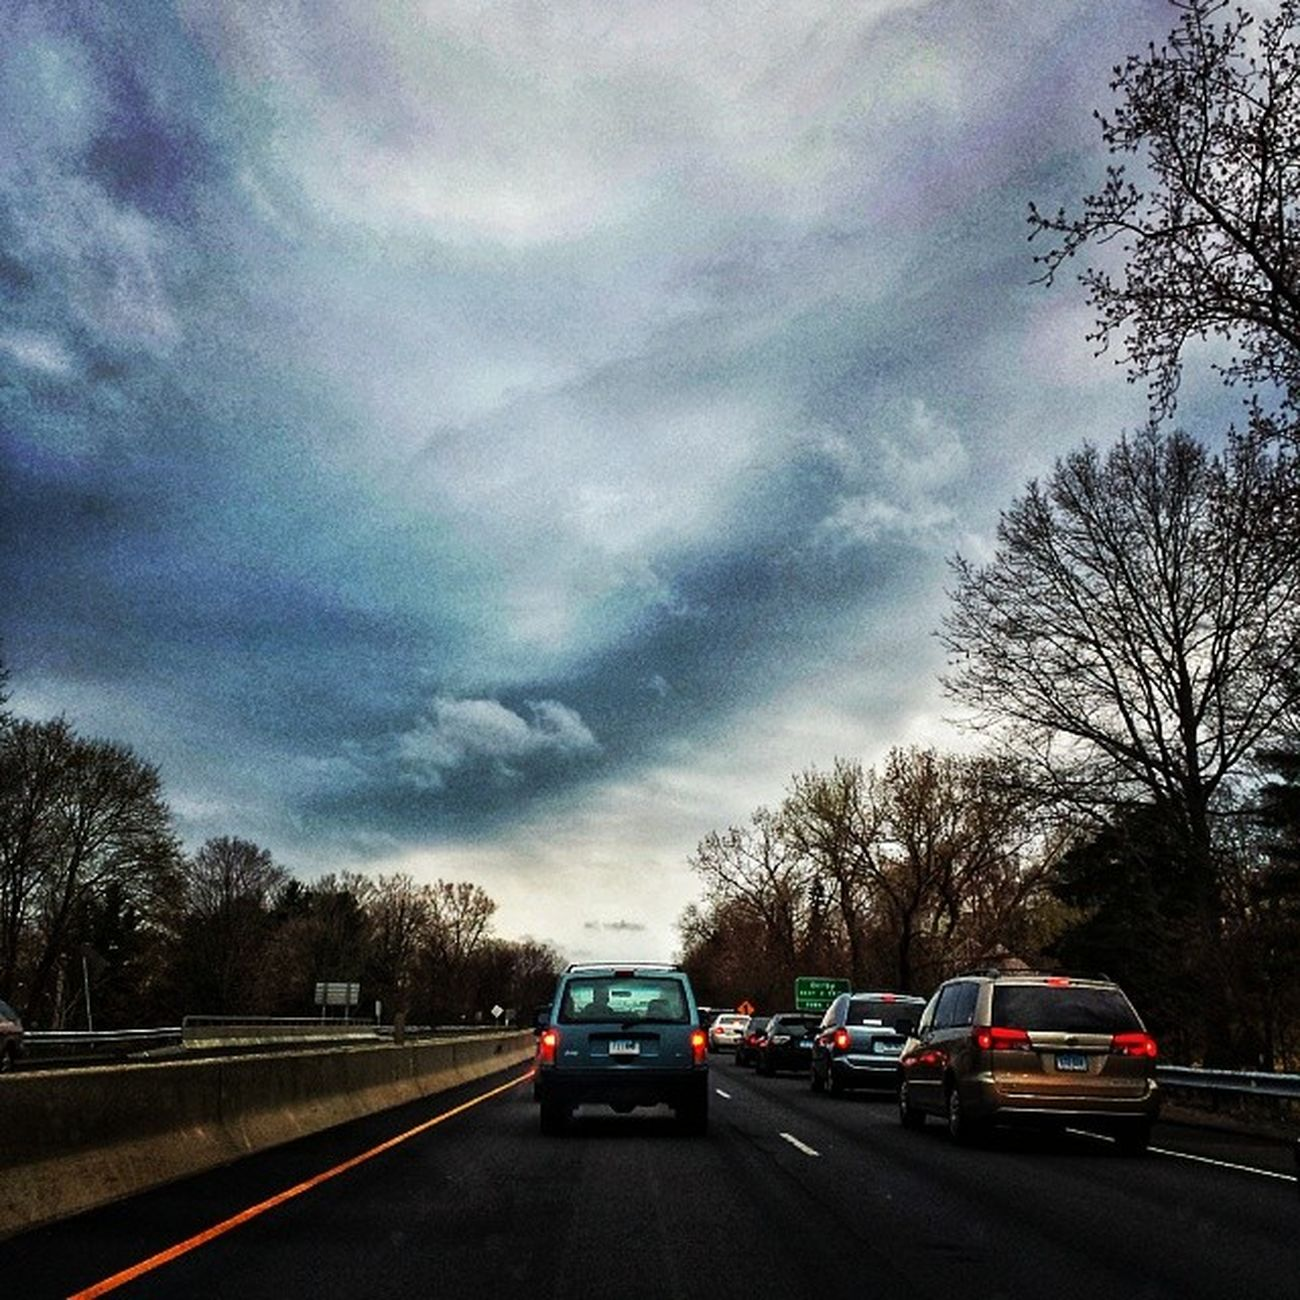 Sky is breaking and so are the cars. Commuter